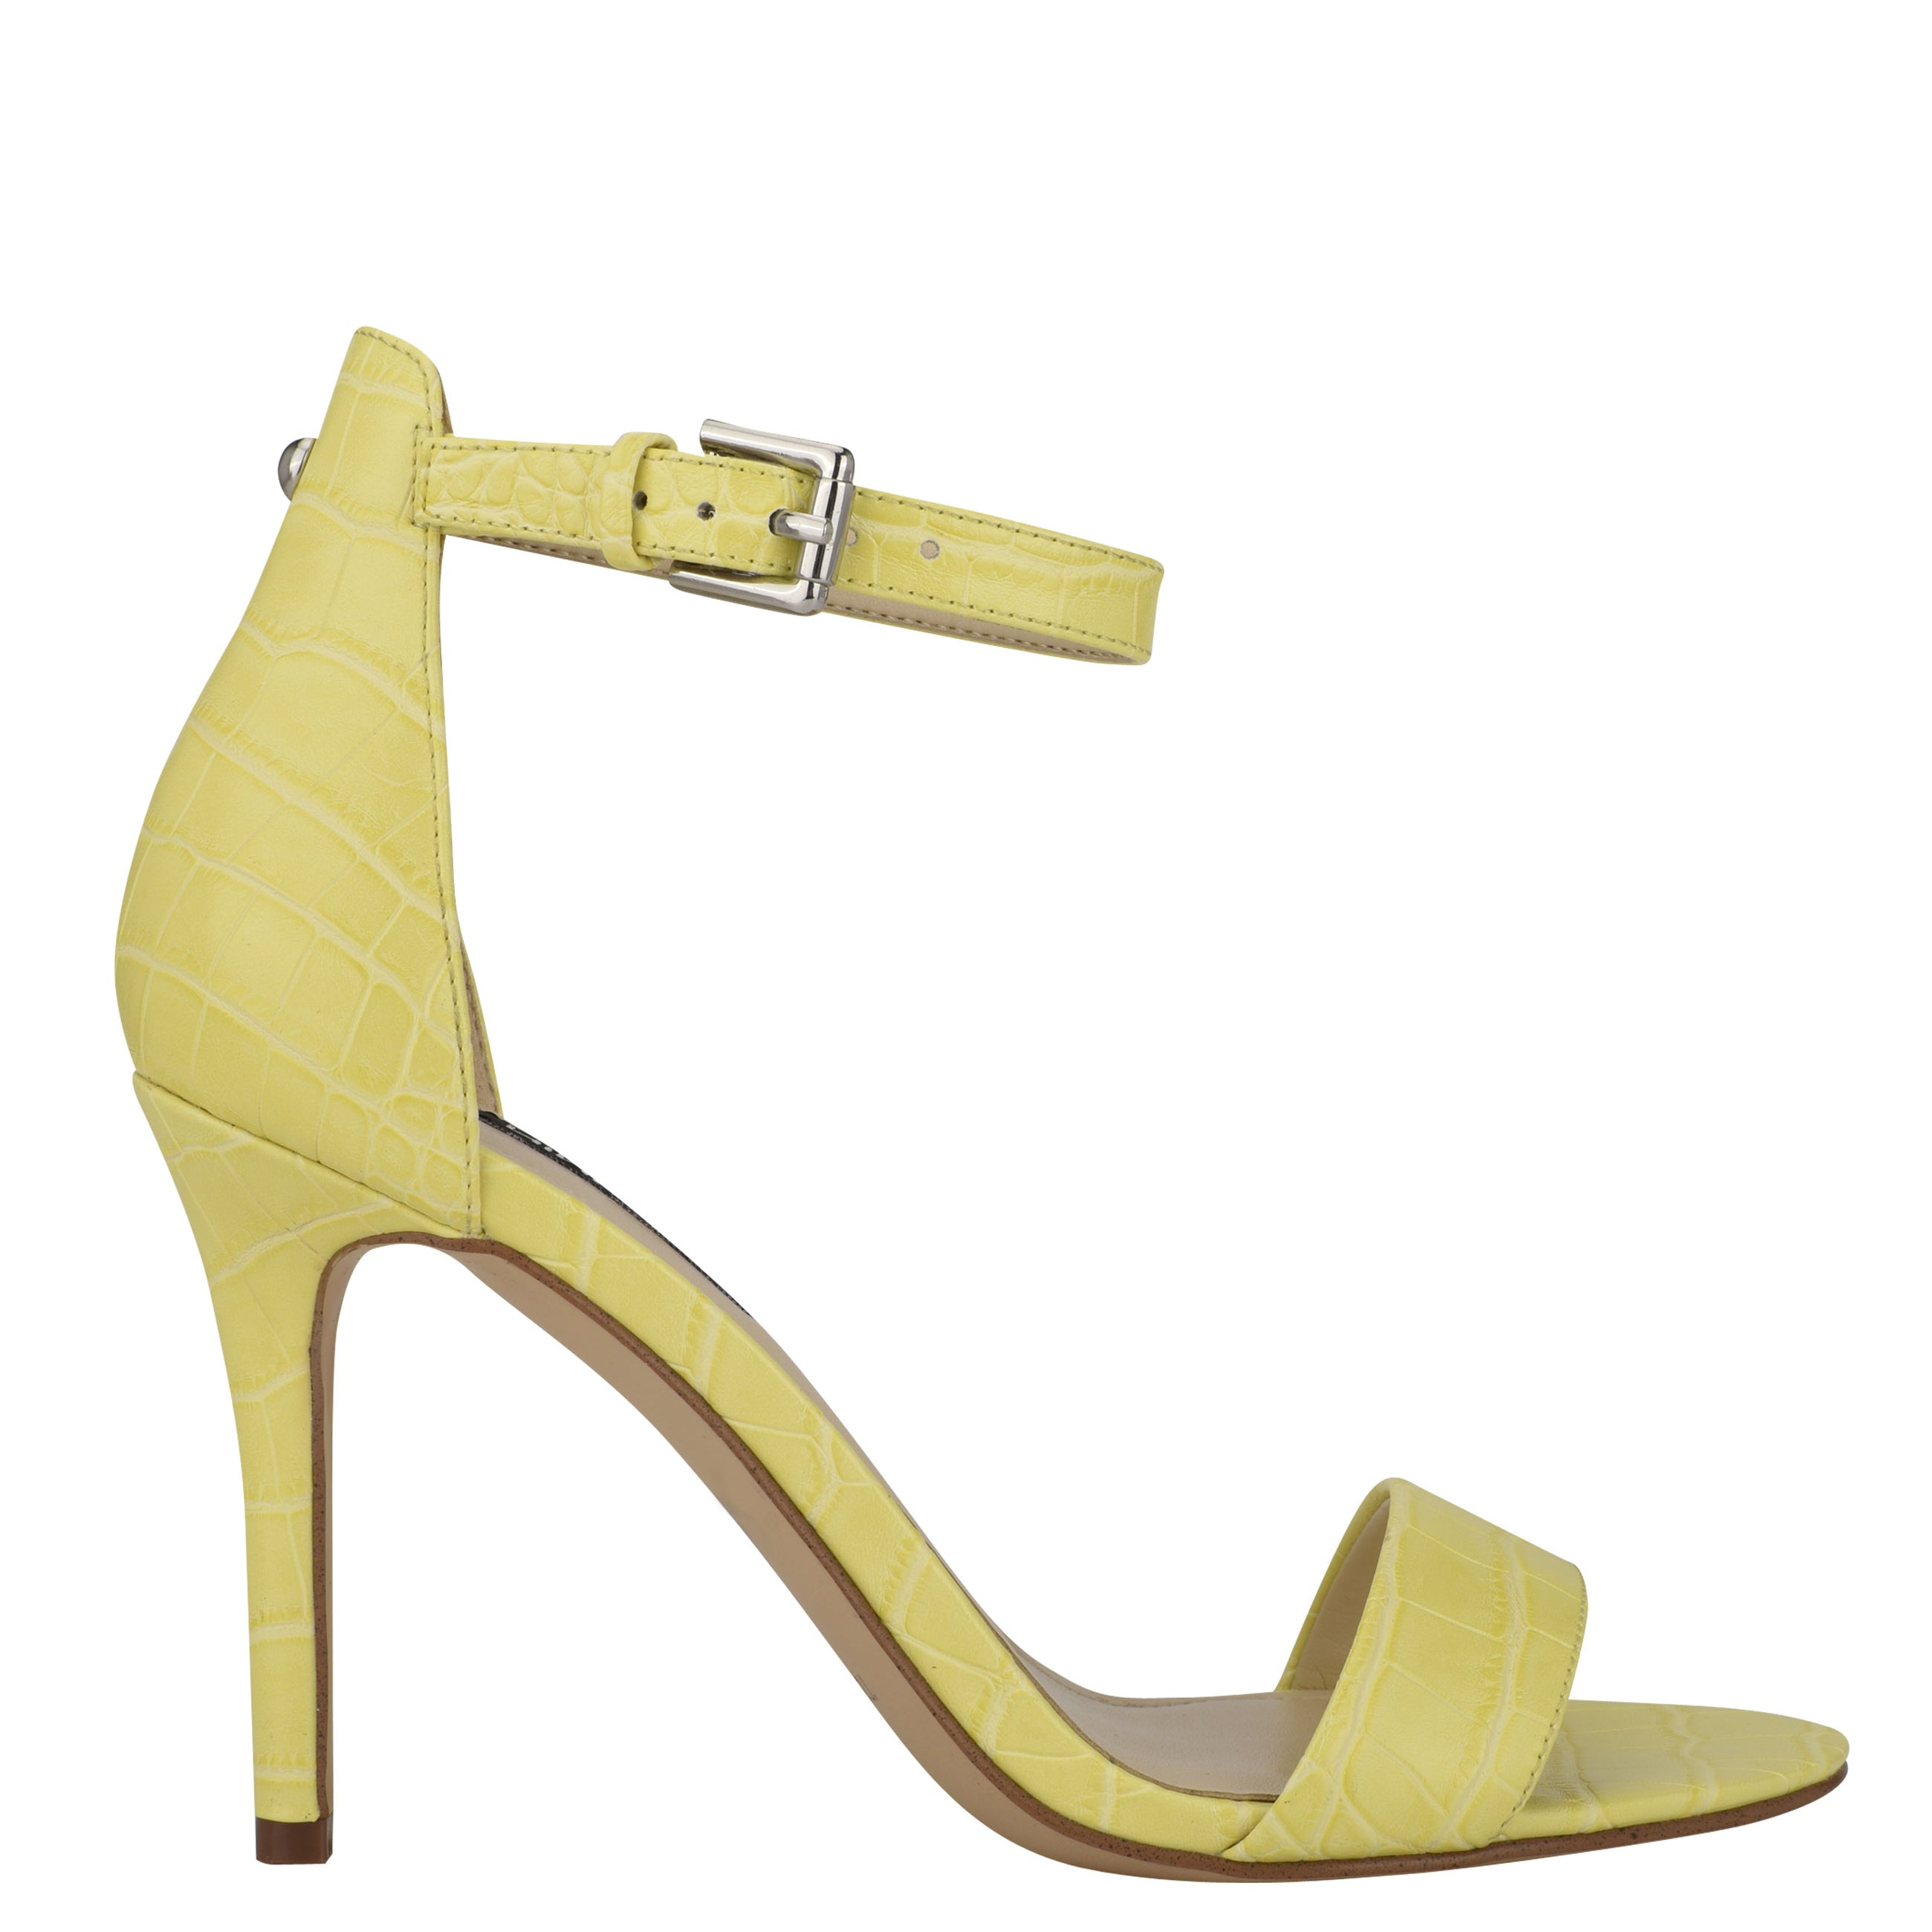 NINEWEST Mana Ankle Strap Sandals